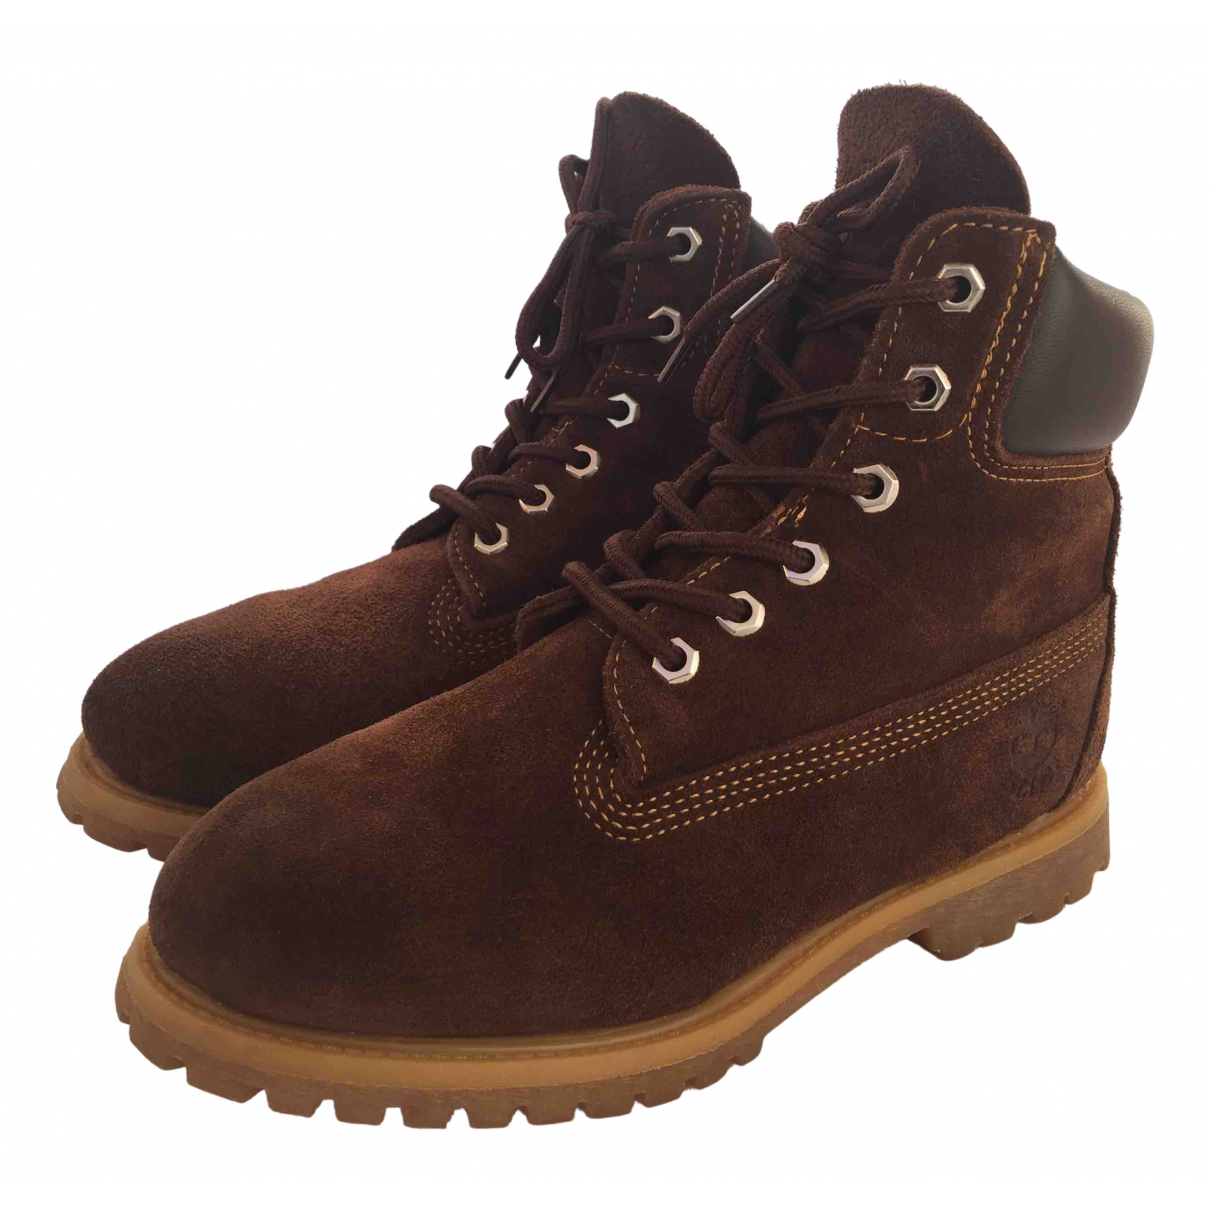 Timberland N Brown Suede Ankle boots for Women 6.5 US